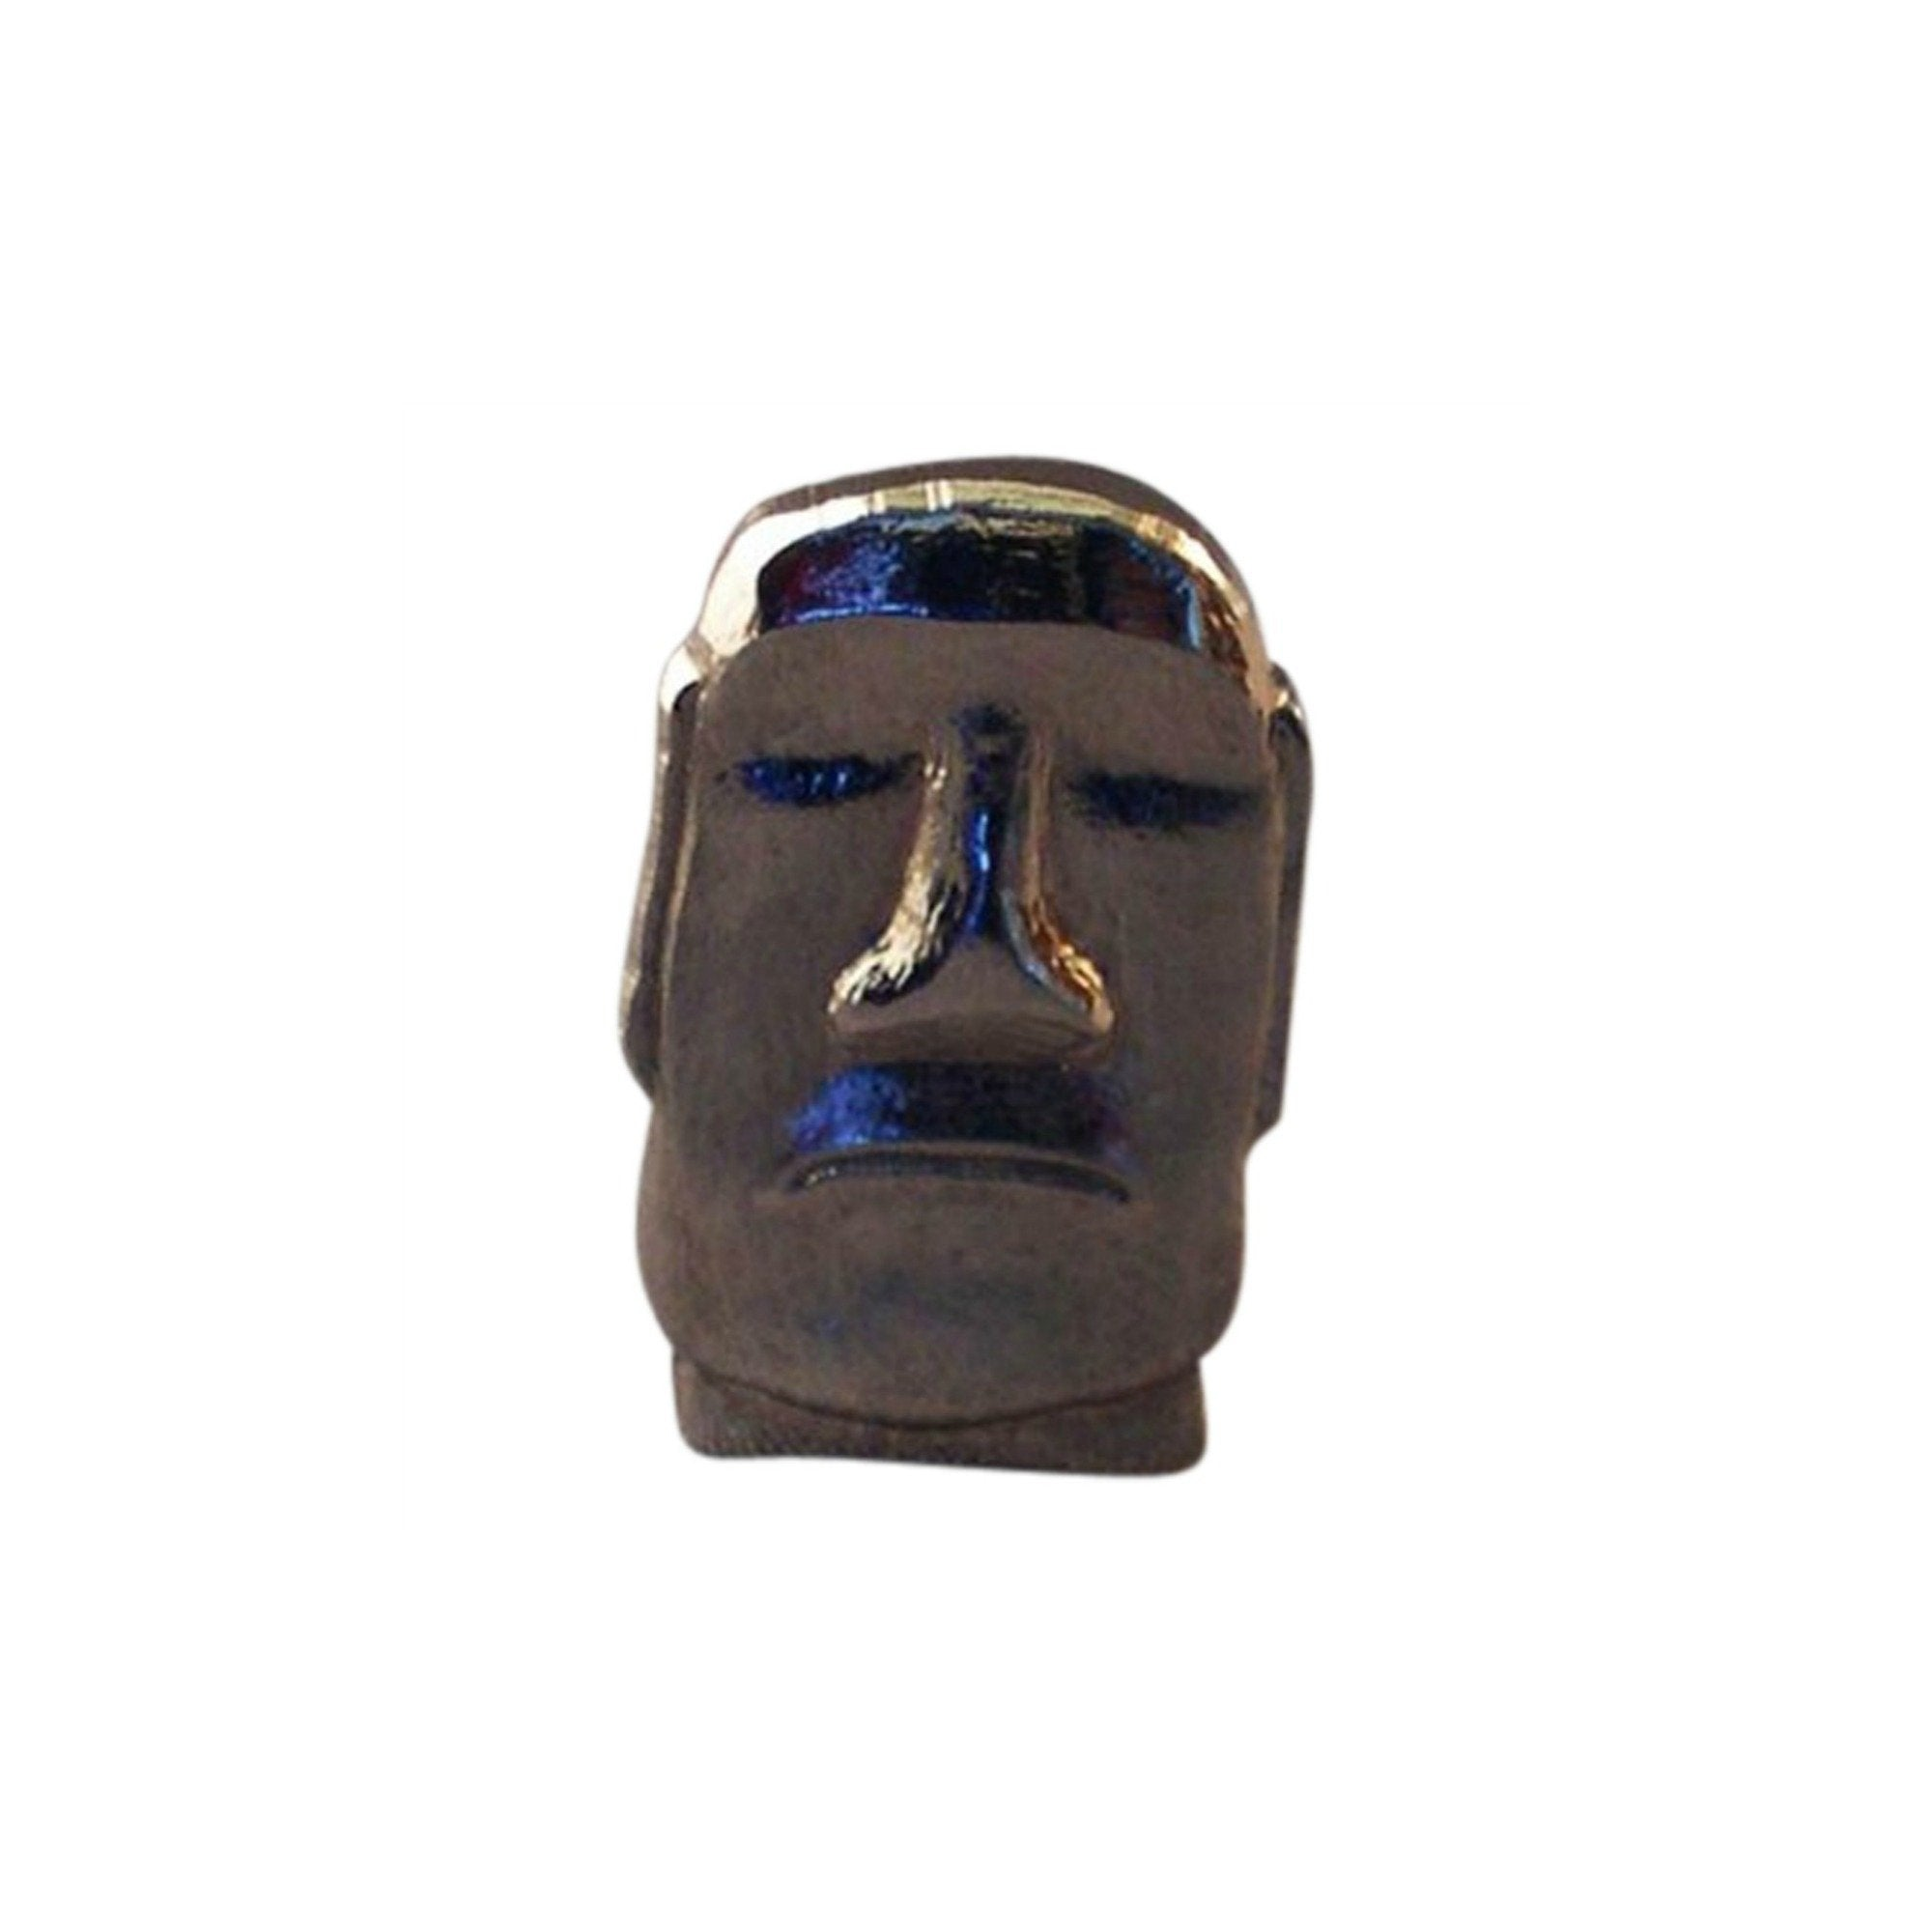 Easter Island Head Lapel Pin Badge - Minimum Mouse